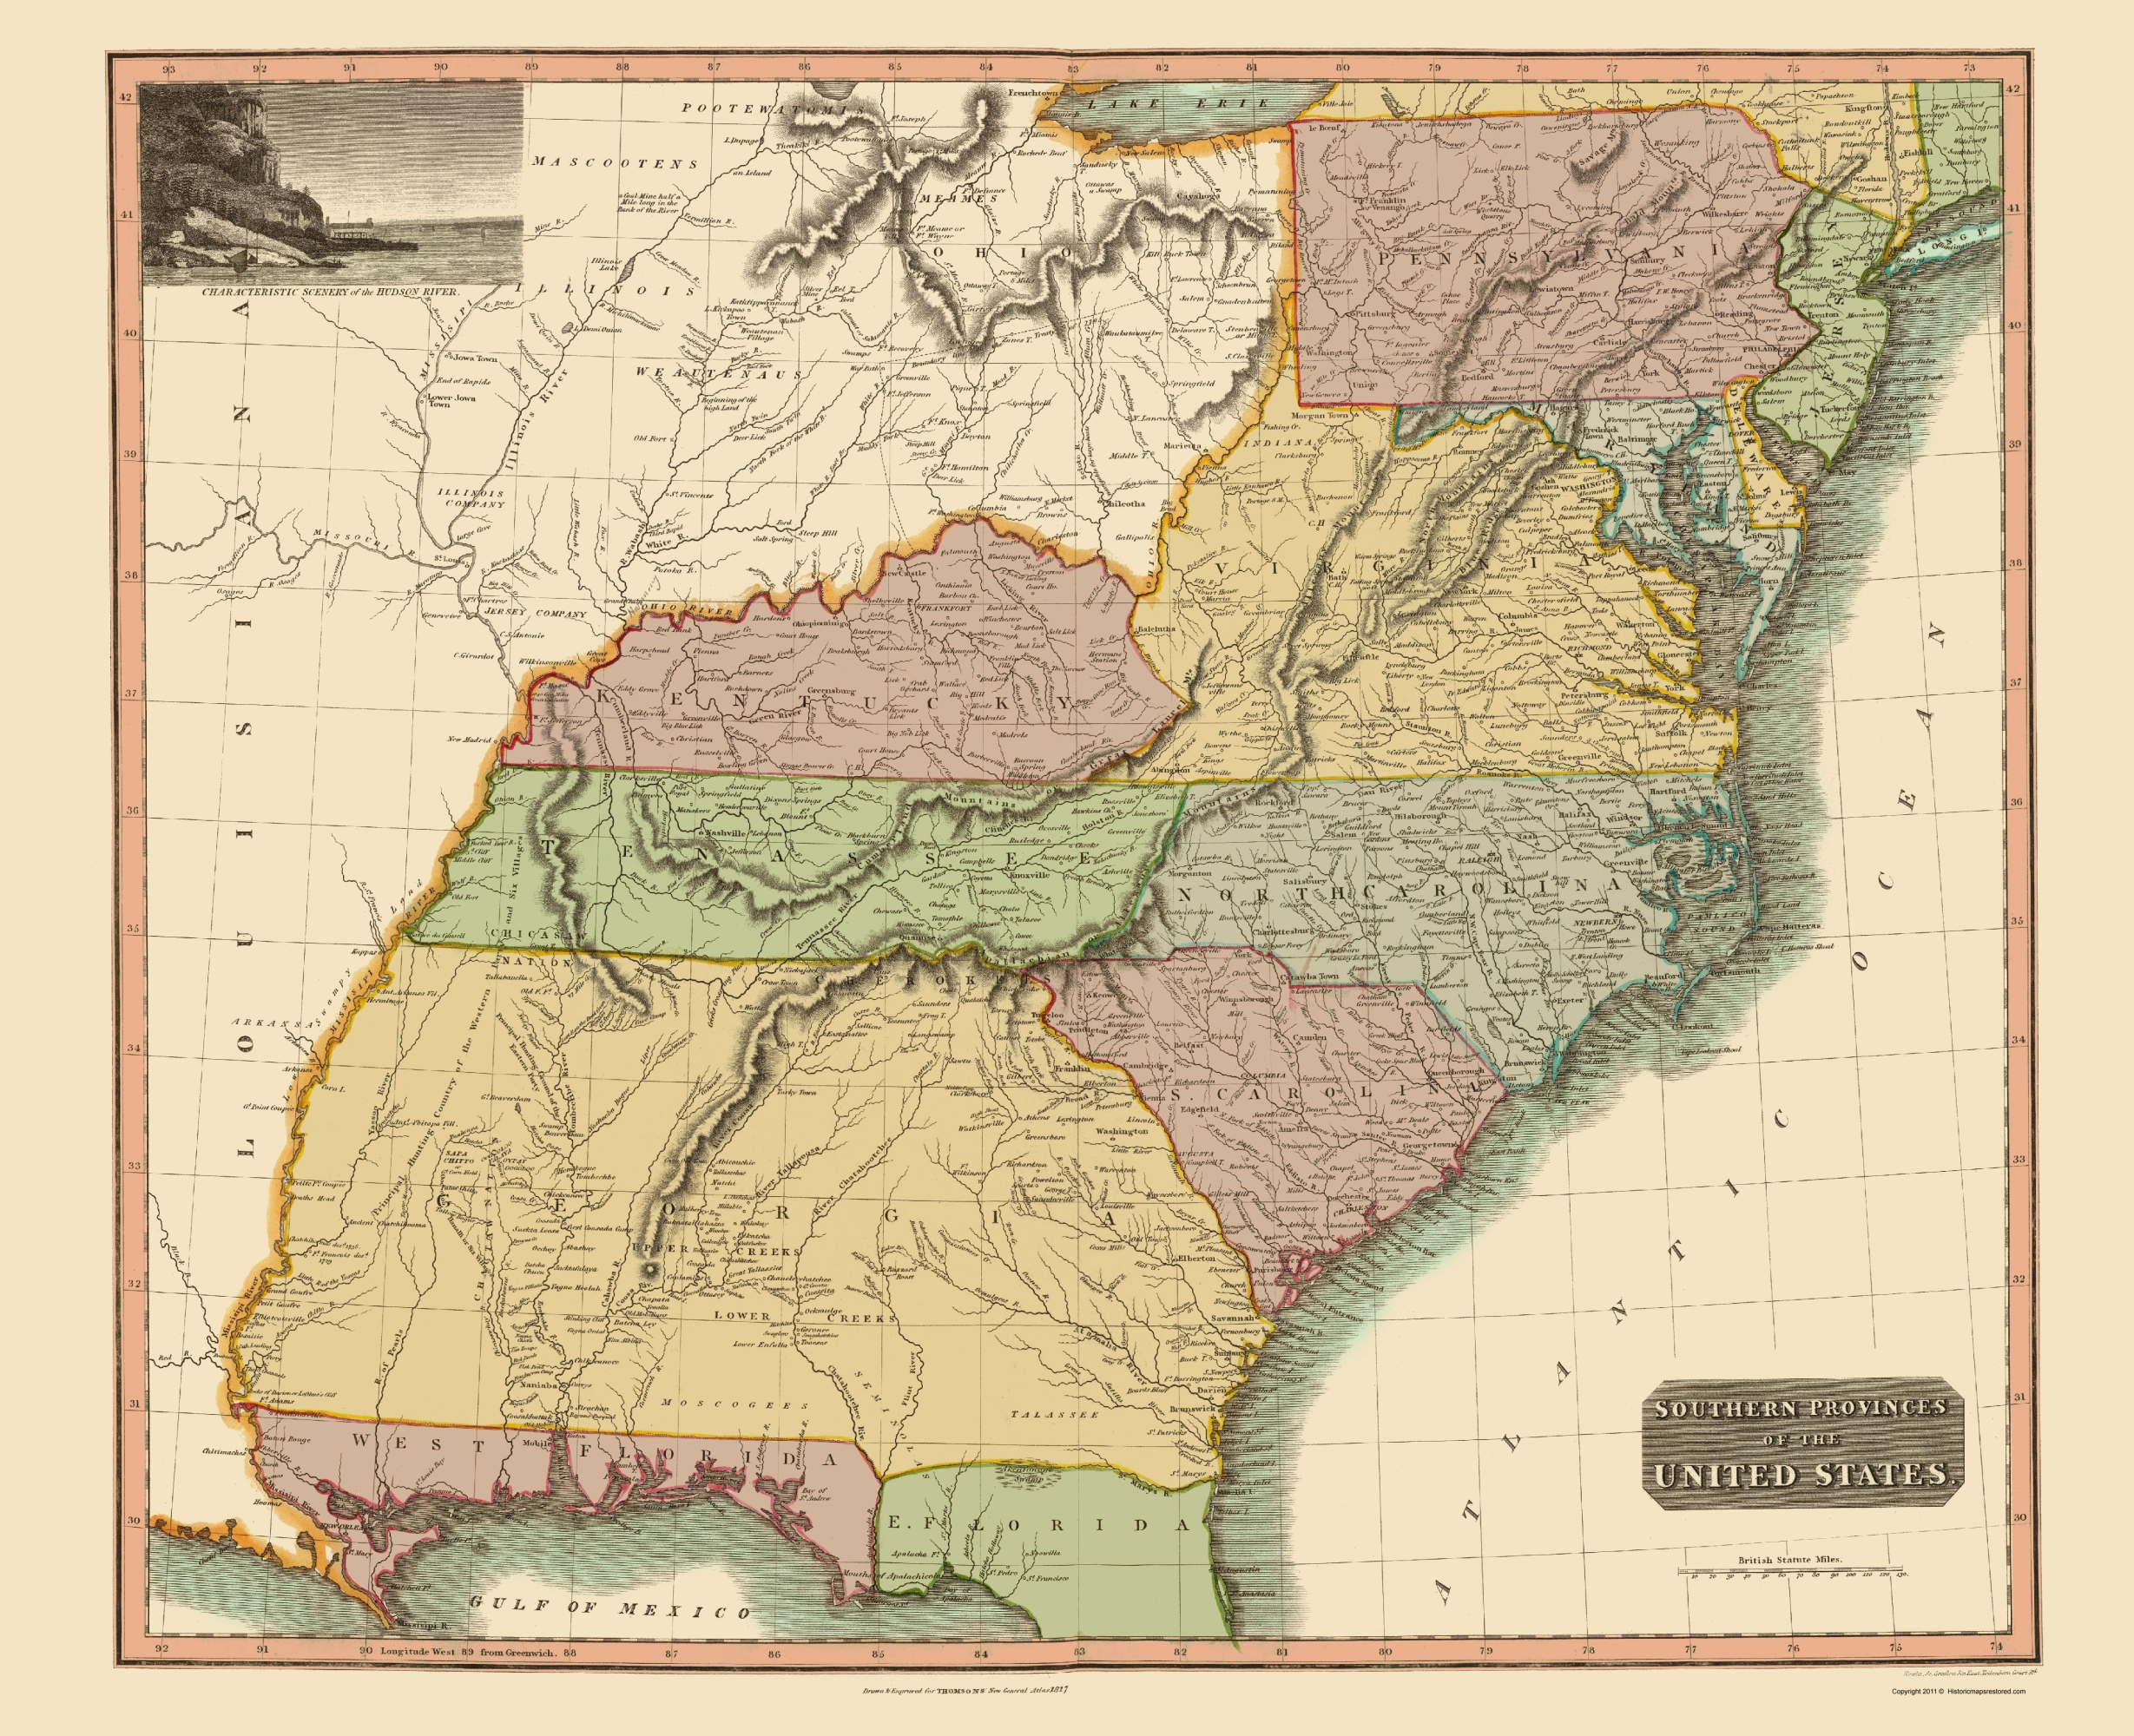 Old State Map - Southeastern United States - Thomson 1817